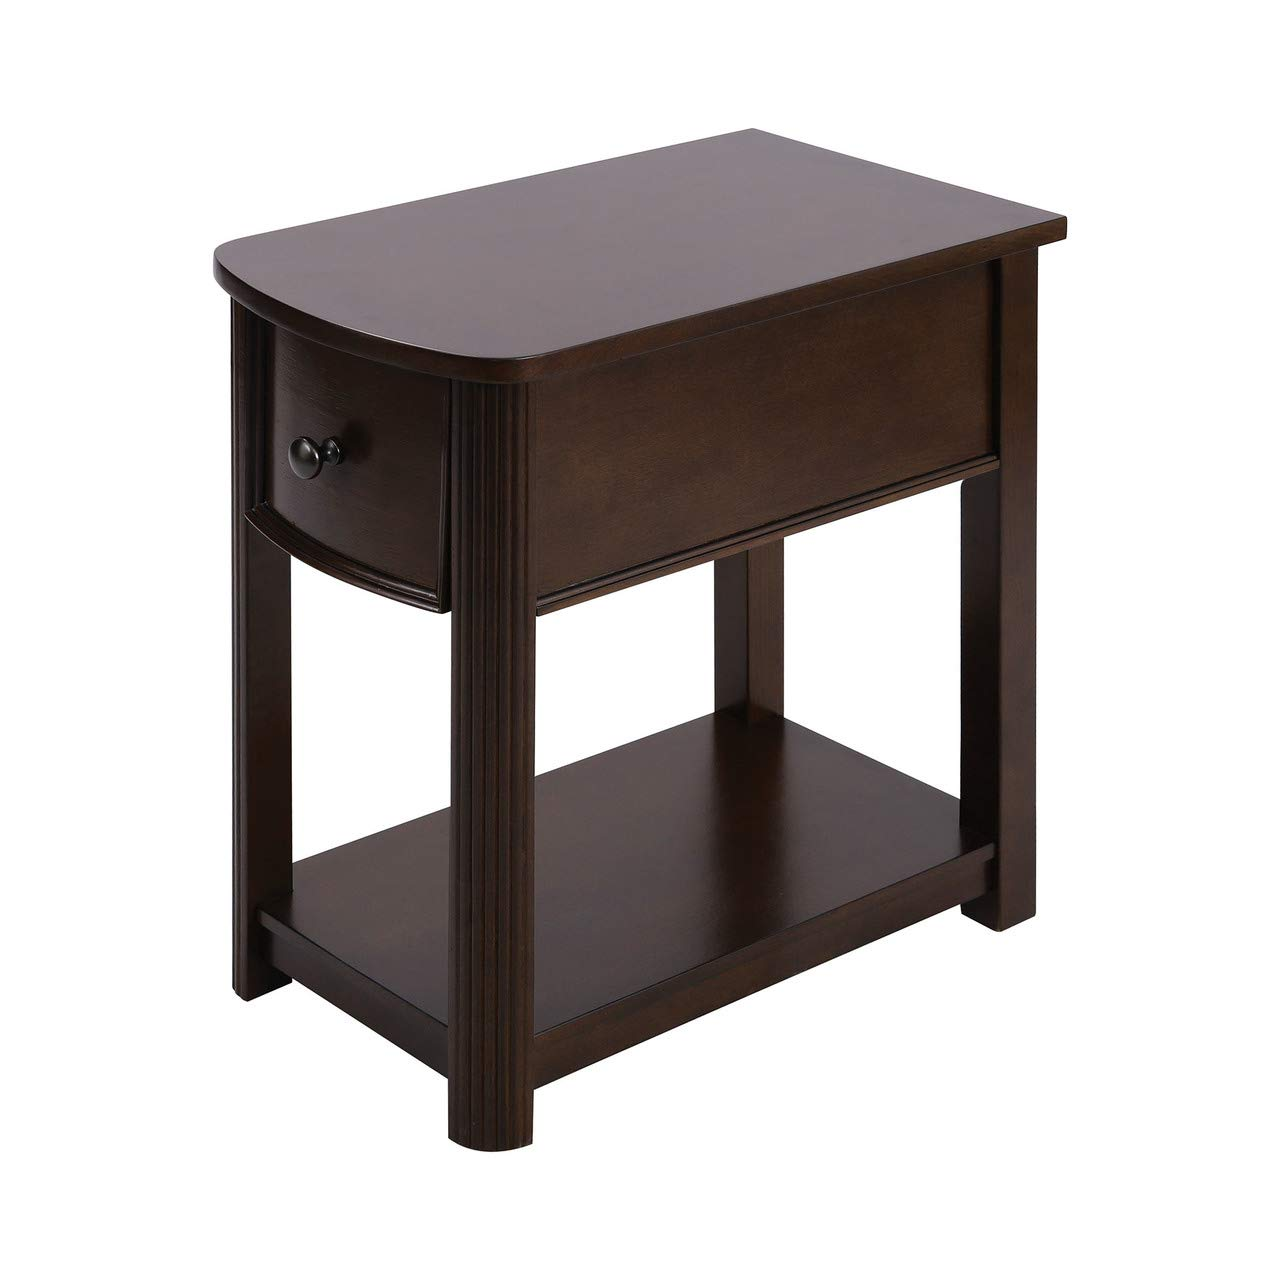 Carlyle Chairside End Table Almost Black Ashley Furniture Signature Design Rectangular with 2 USB Ports Contemporary